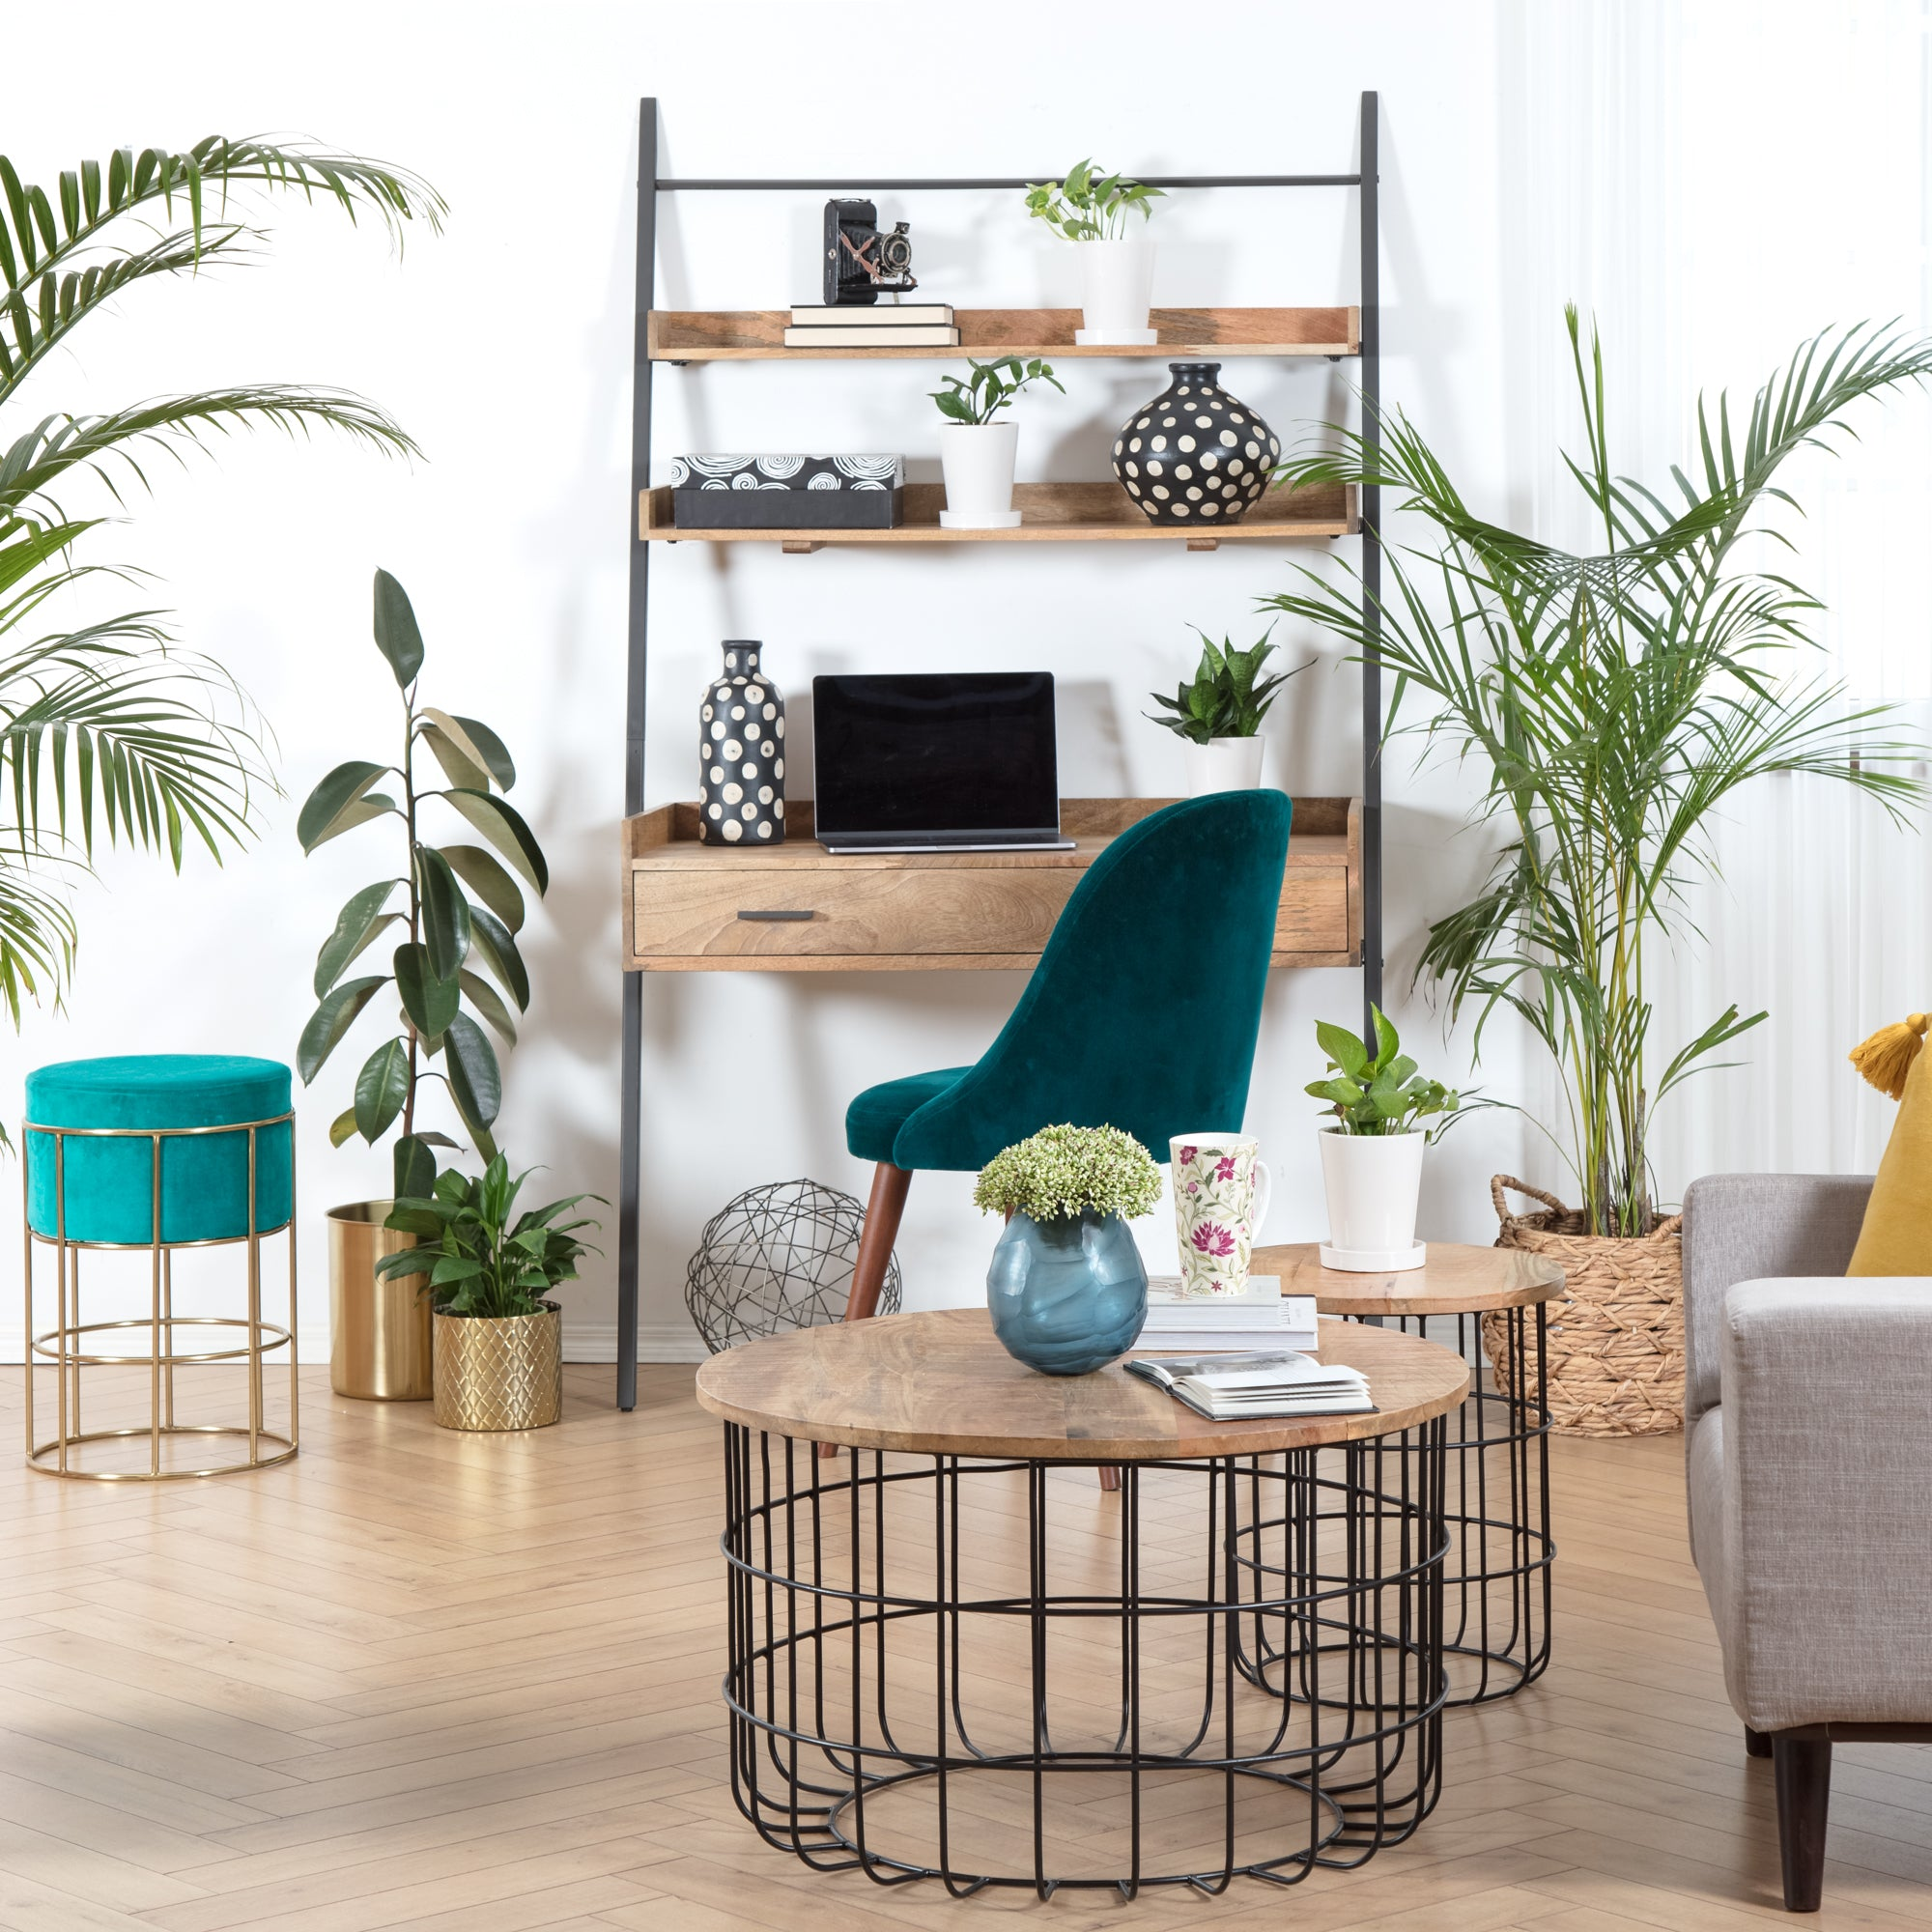 Shop The Look - Home Office